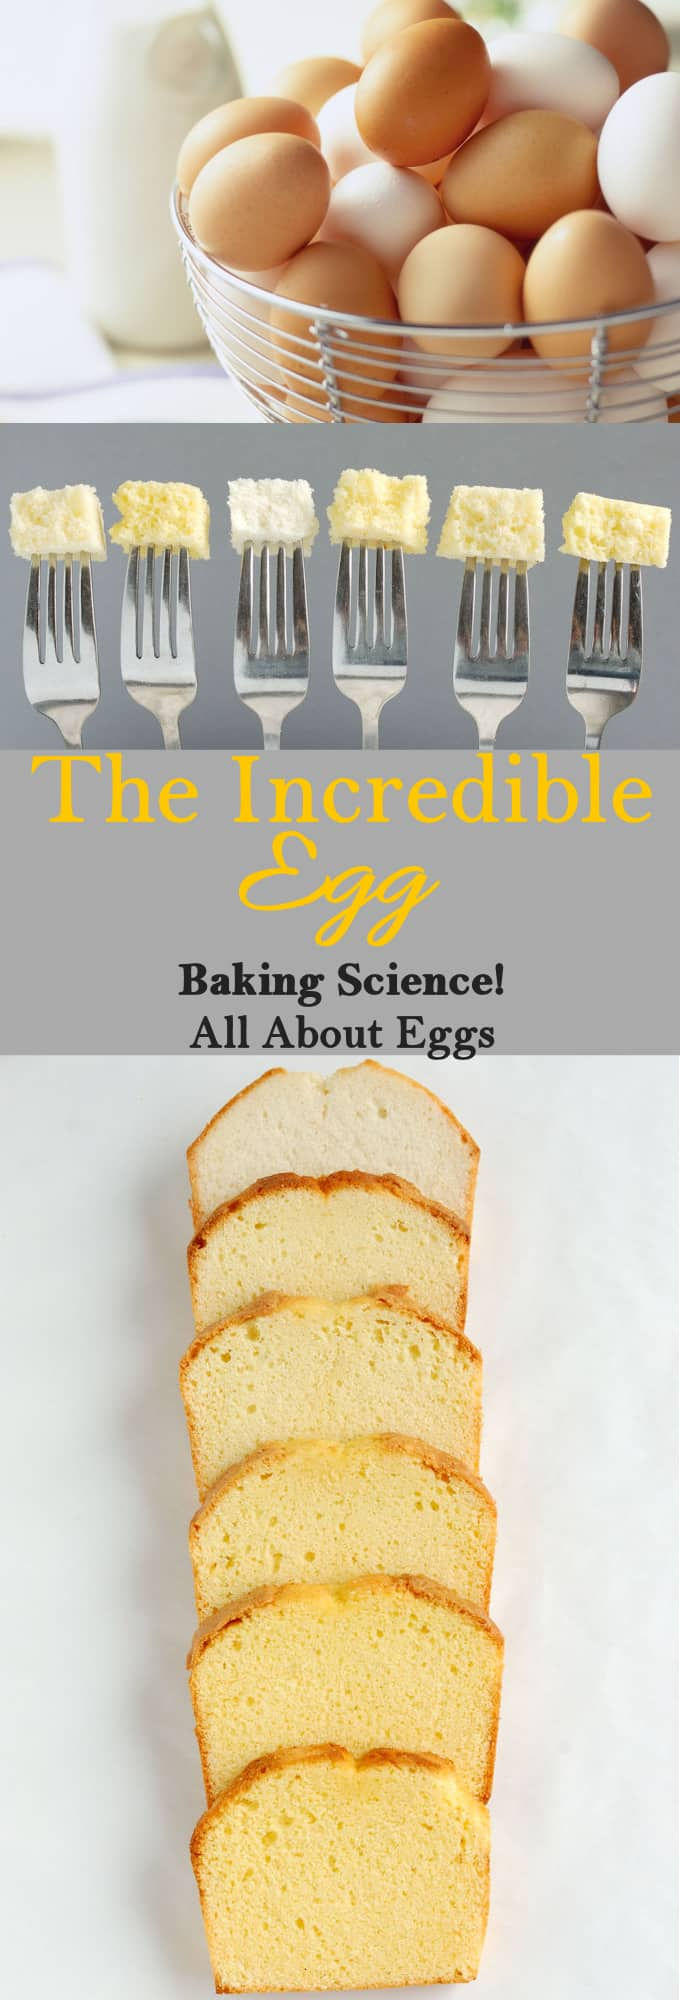 What are egg yolks and whites made of? Why do egg white whip up stiff but yolks don't? Learn all about this essential baking ingredient.